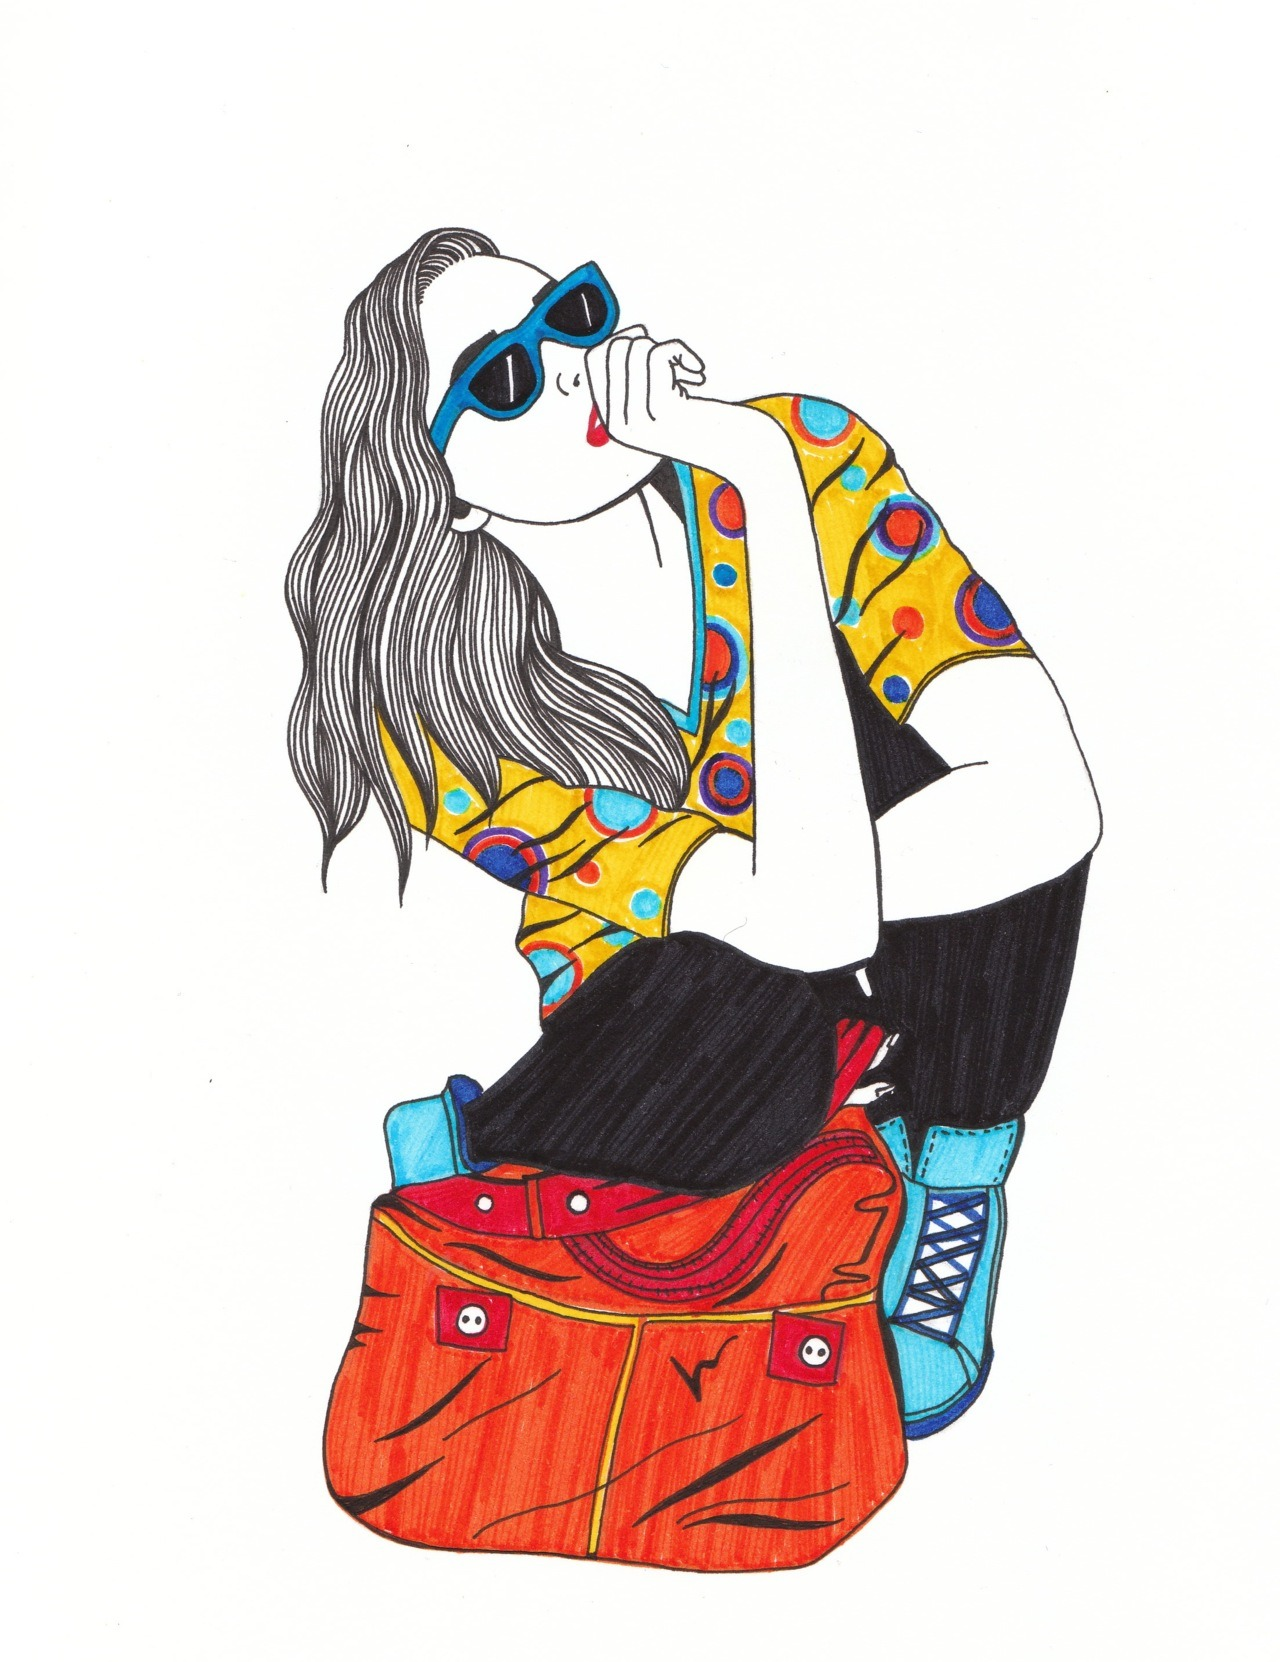 one of my felt tip fashion illustratios